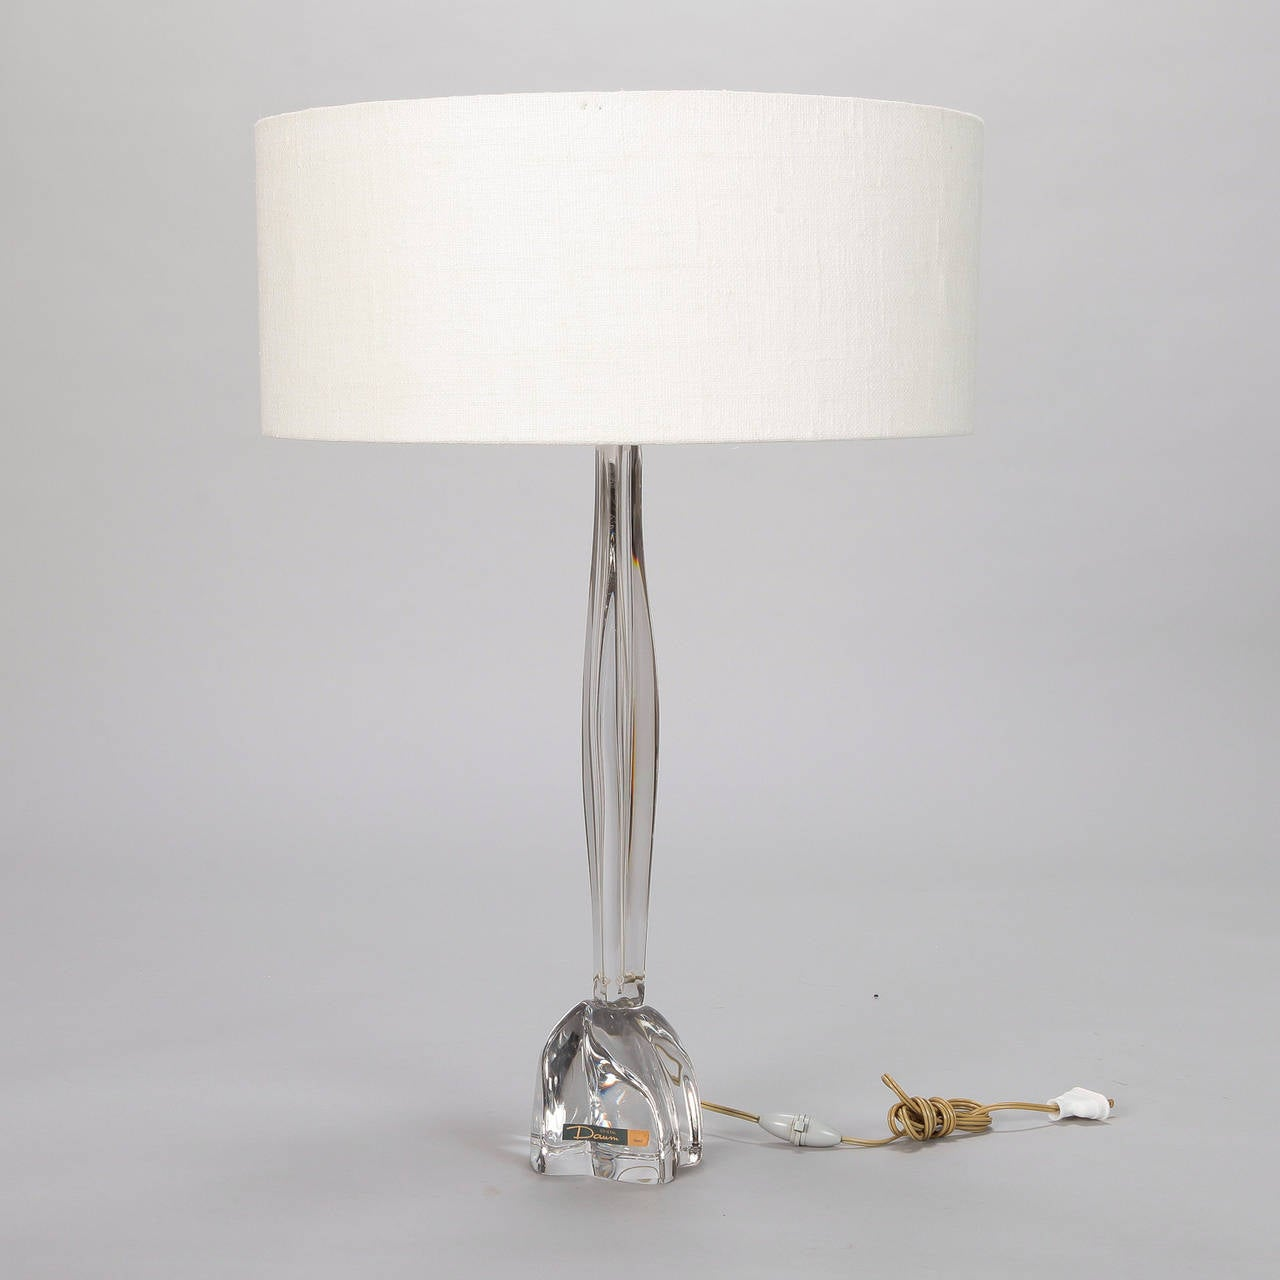 Tall Midcentury Daum Clear Glass Table Lamp With Shade For